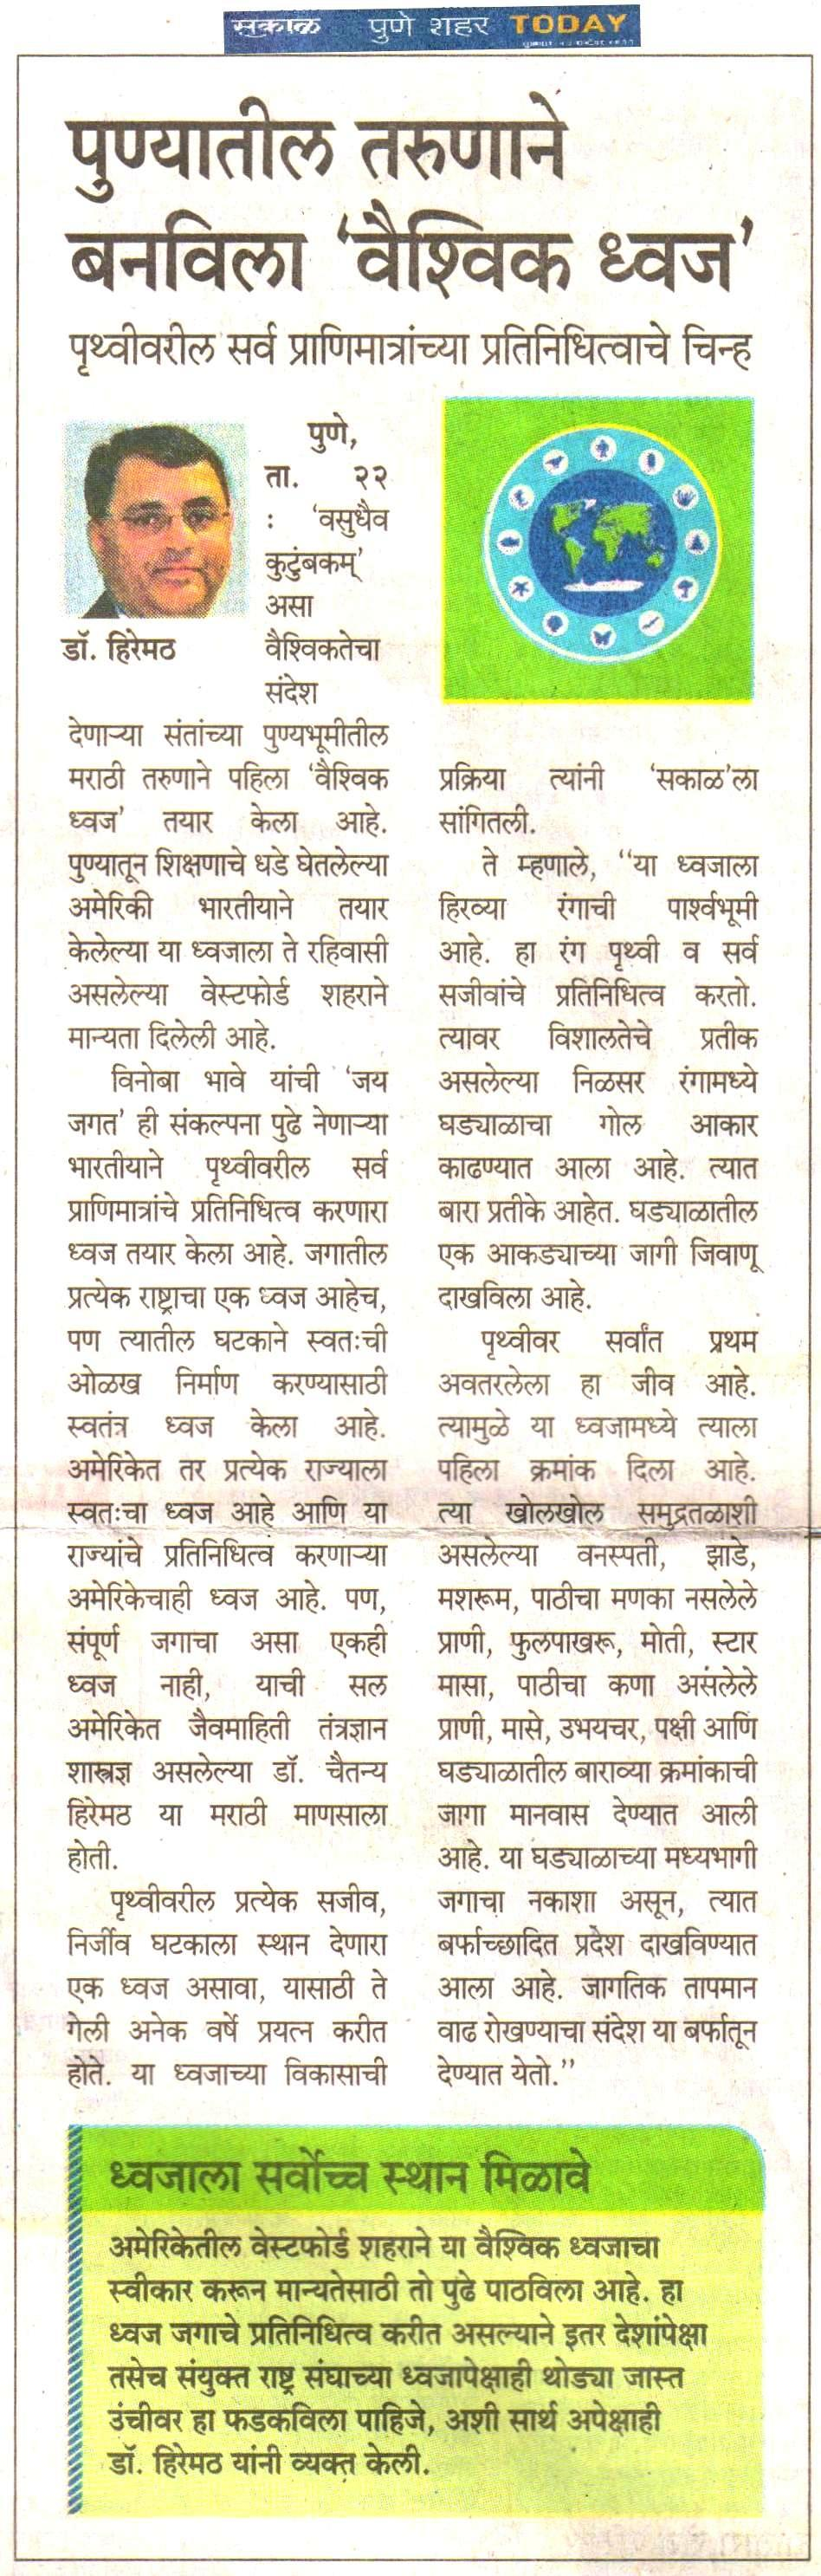 NewsPaper_Sakal_23Sep2011